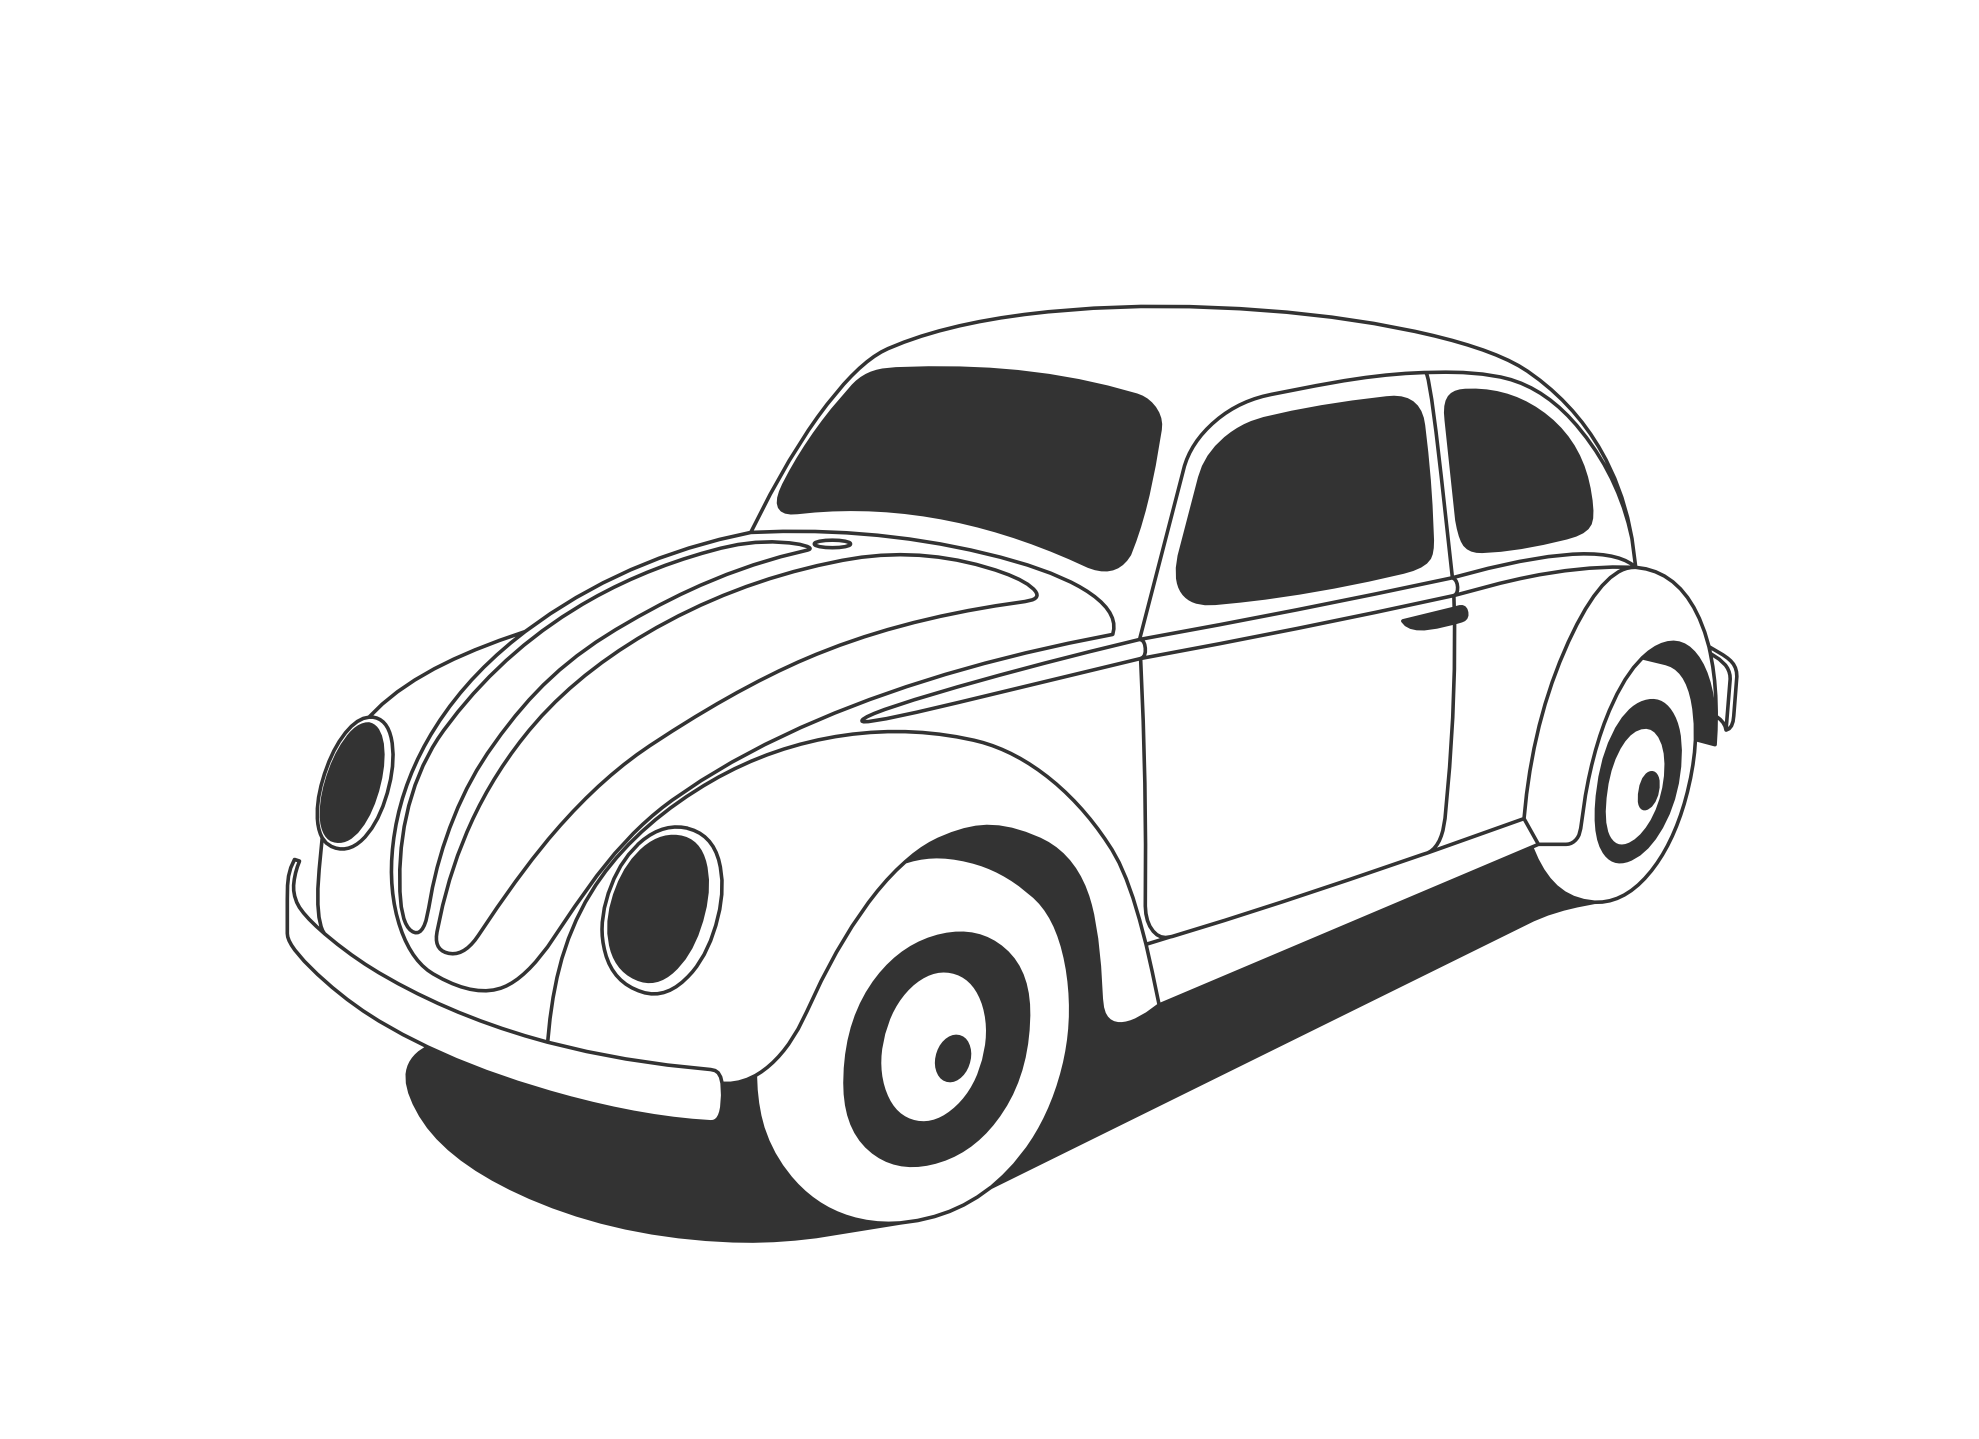 Vw Beetle Classic Black White Line Art Coloring Sheet Colouring Page